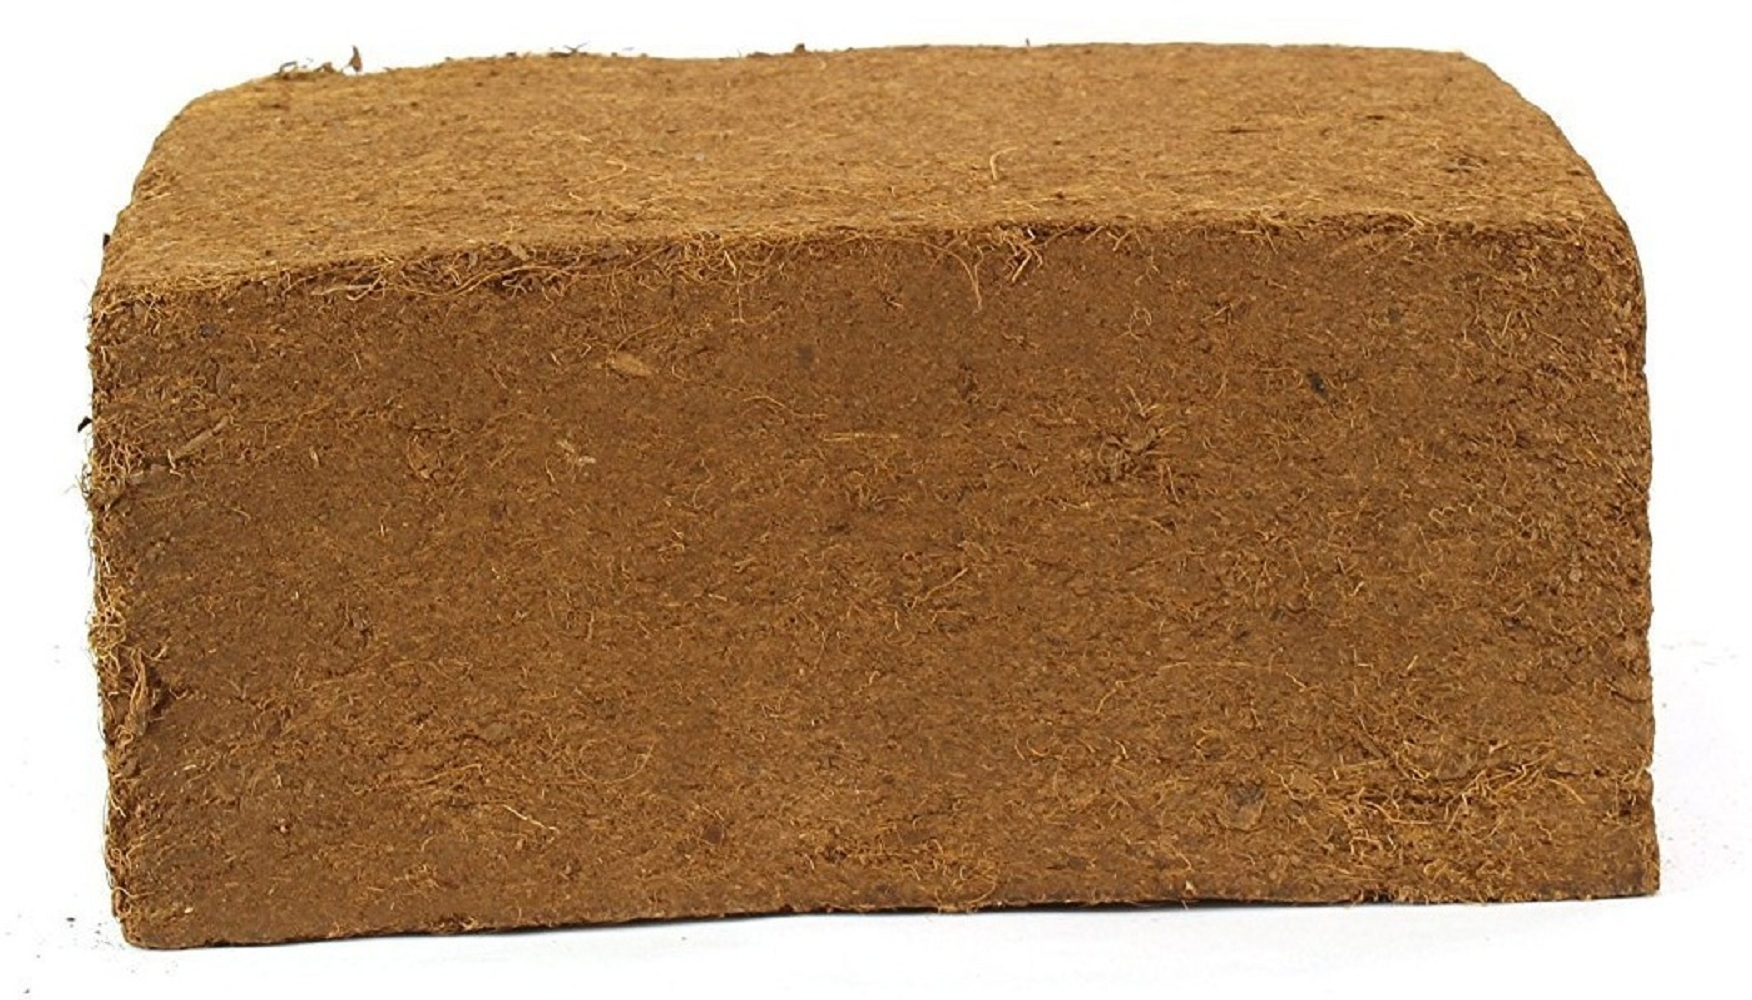 Buffering Coco Coir | Buffered Coir Substrate Exporters